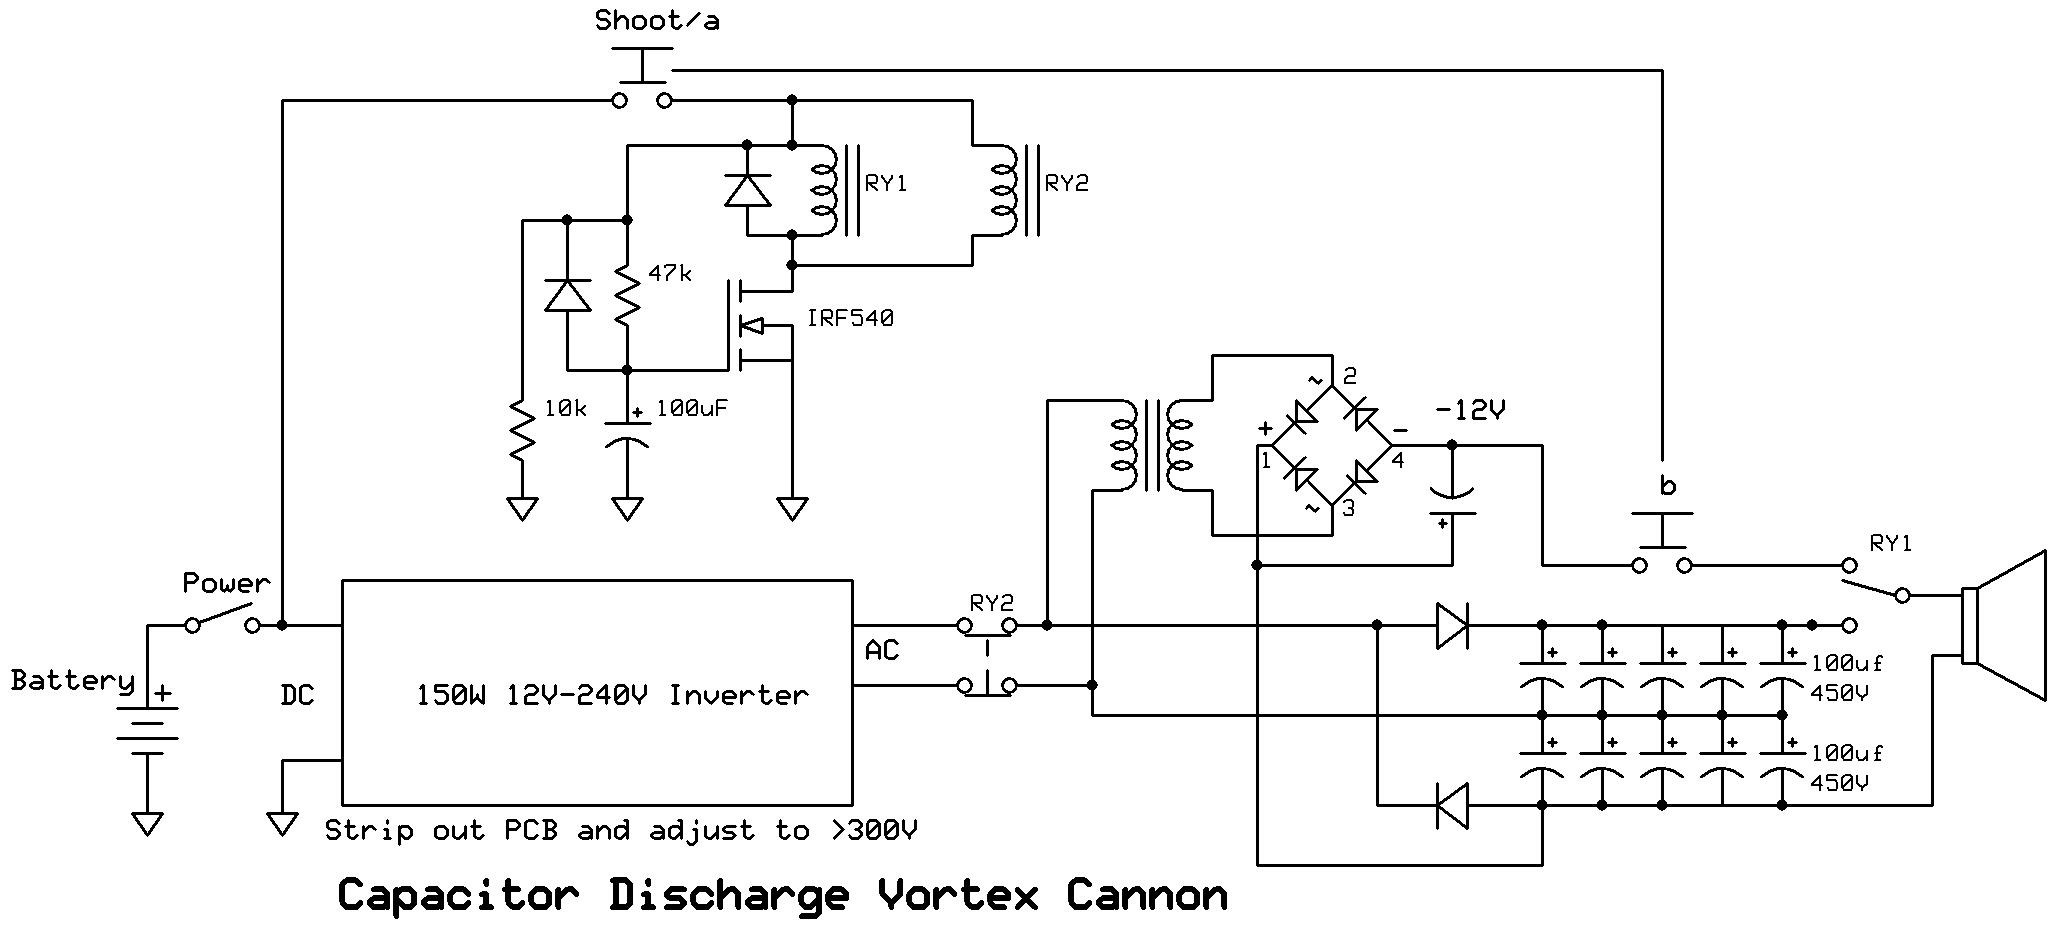 Vortex Cannon Using Capacitor Discharge Capacitance Charging And Discharging Of A Delay Hold 12v Before Capacitors Relay Isolating Inverter Eliminates The Need For Series Resistor Giving Faster Charge No Heat